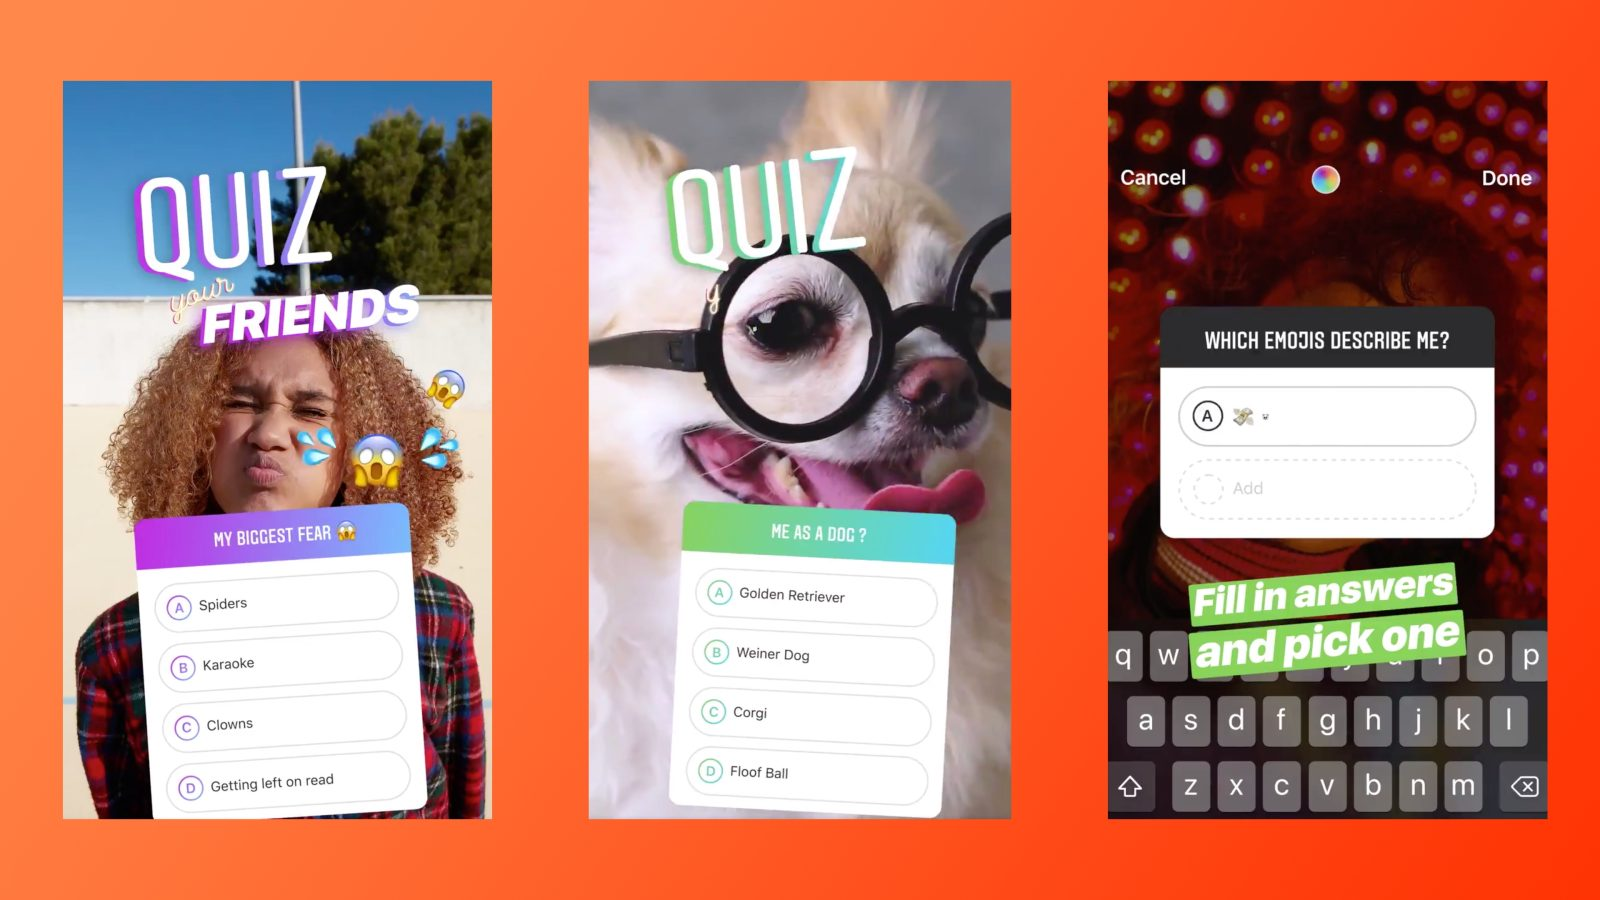 Instagram quiz feature lets you ask multiple choice